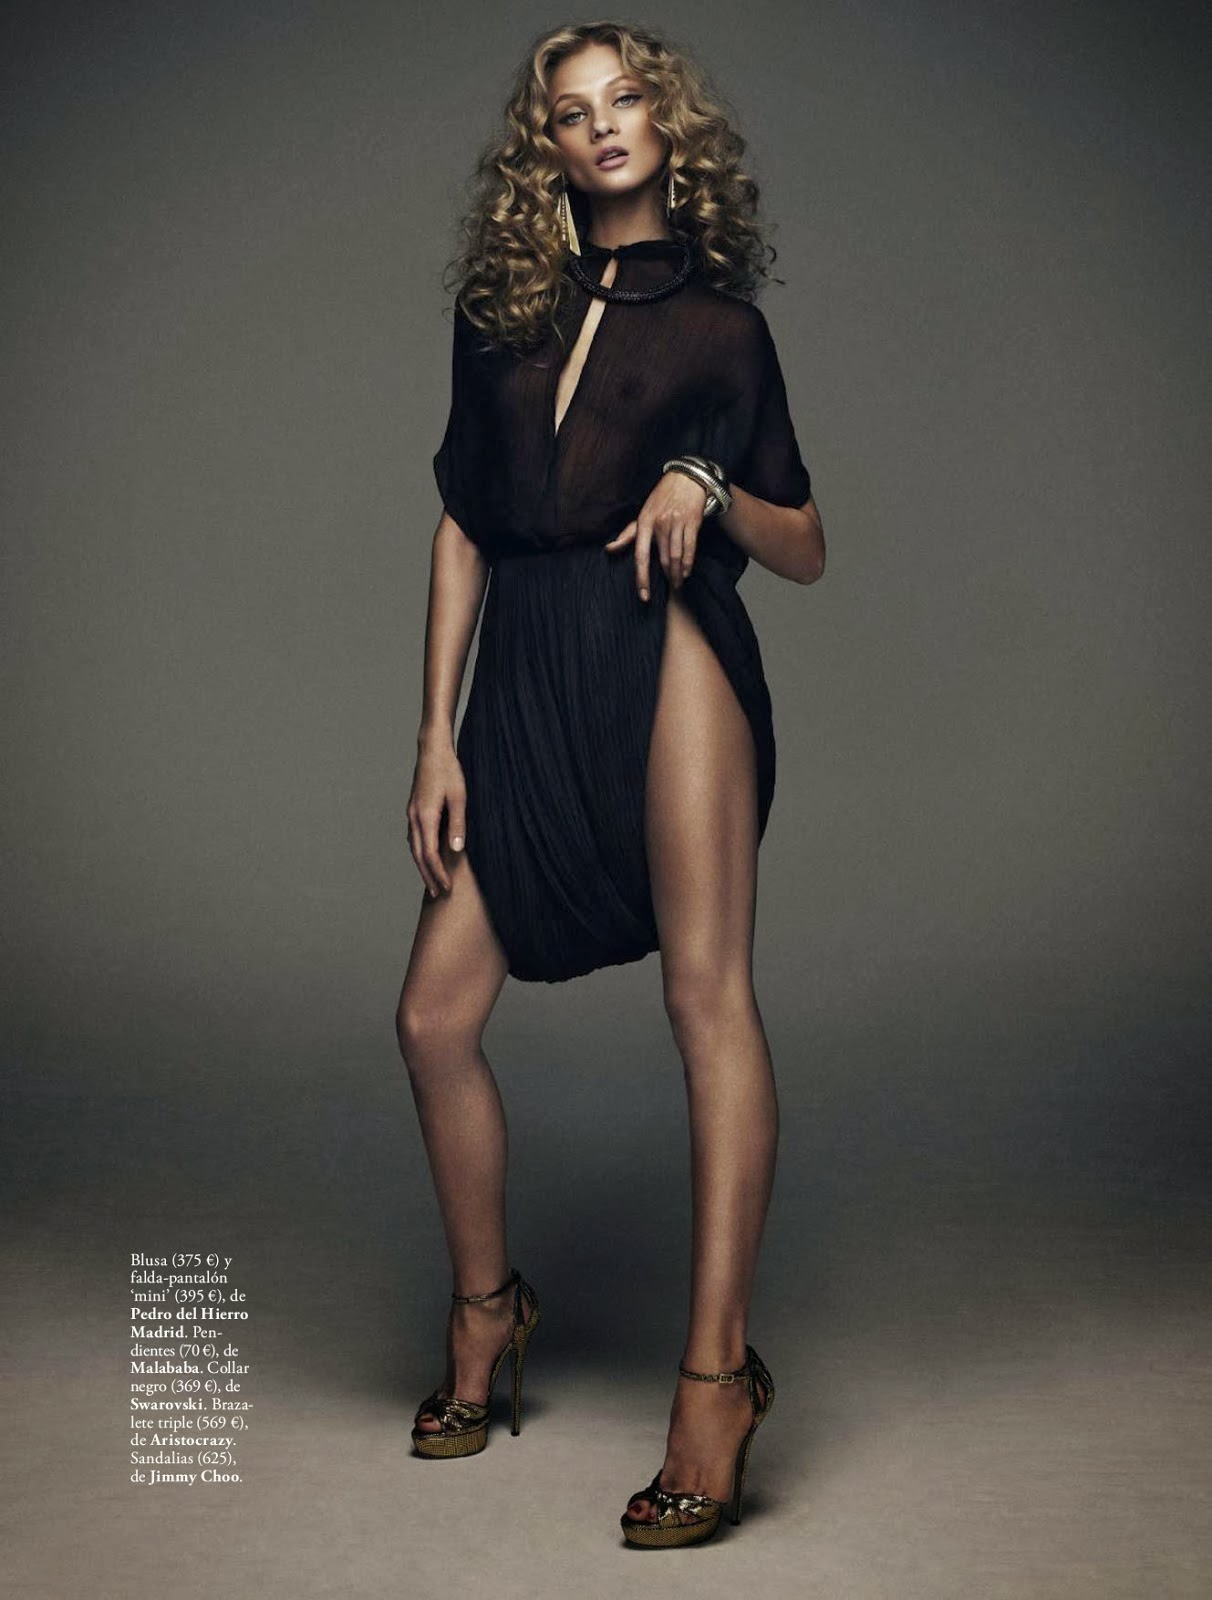 Magazine Scans, Latest wallpapers .Source : Anna Selezneva & Elle Magazine Spain